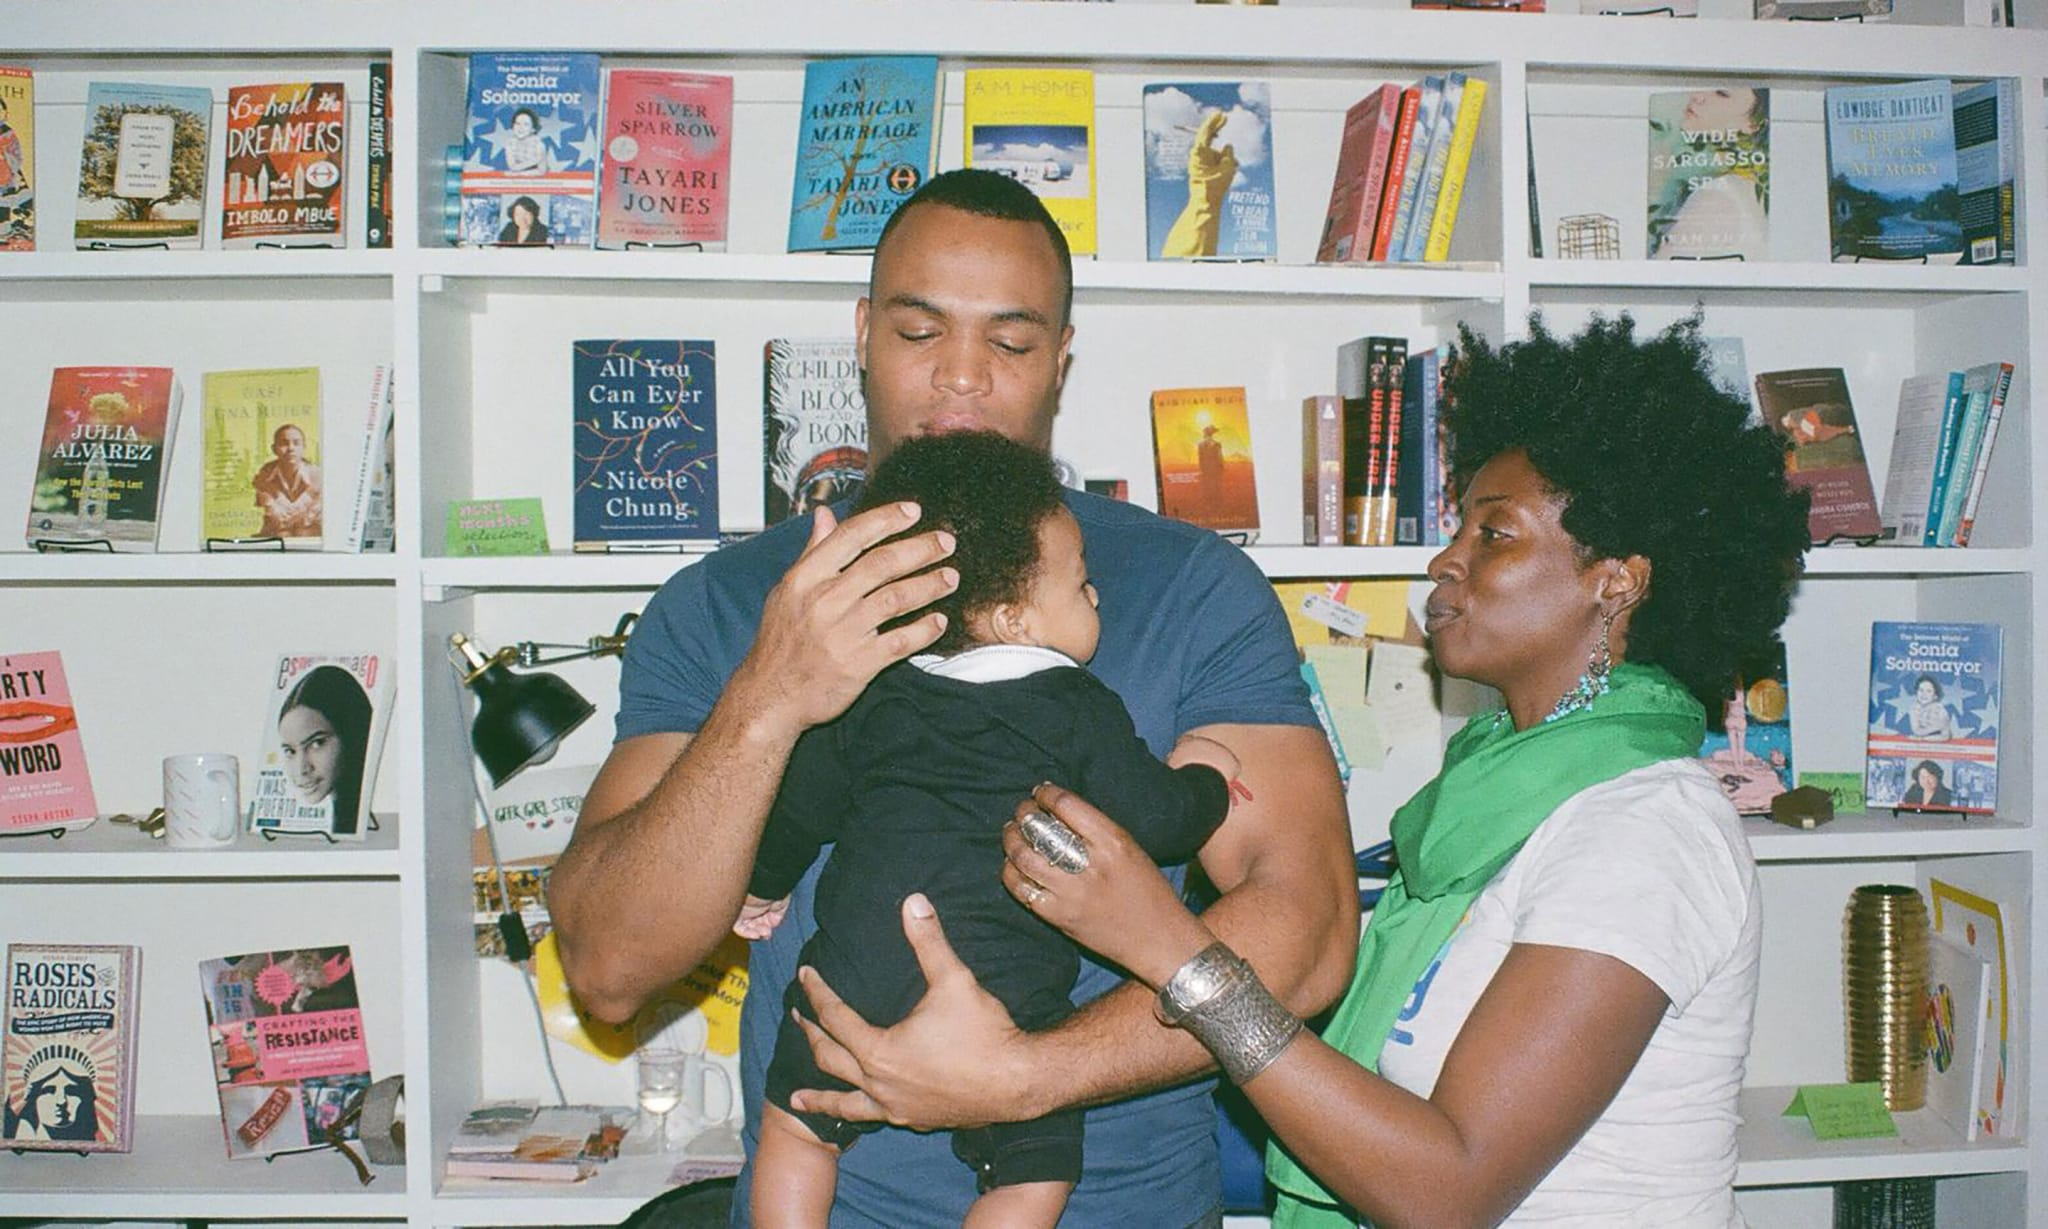 Parents and their child standing in front of a book shelf.